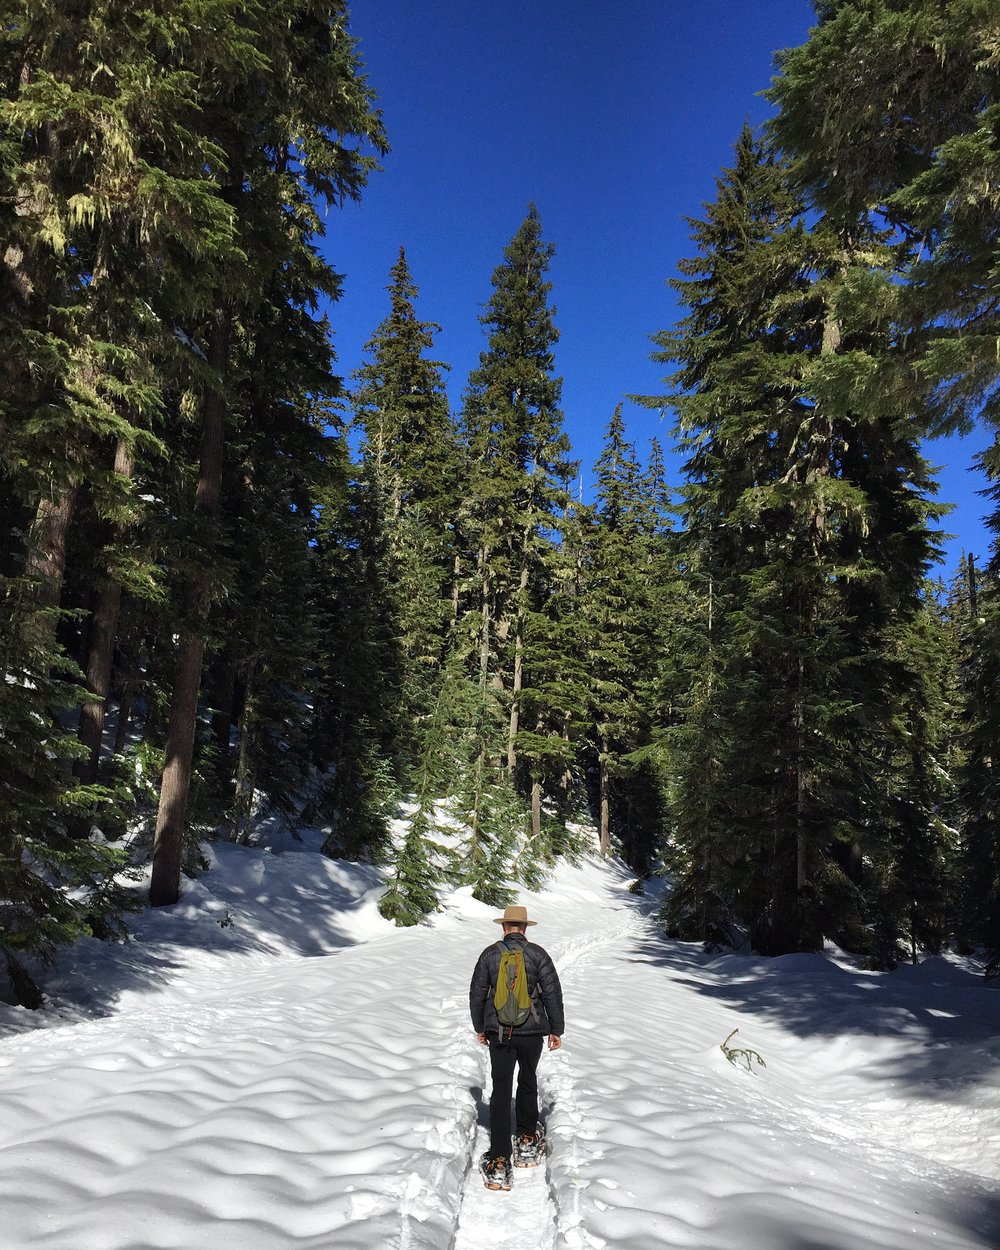 We managed to get out and up to Mount Hood for a fun snowshoe trek on one of the few sunny days this winter.